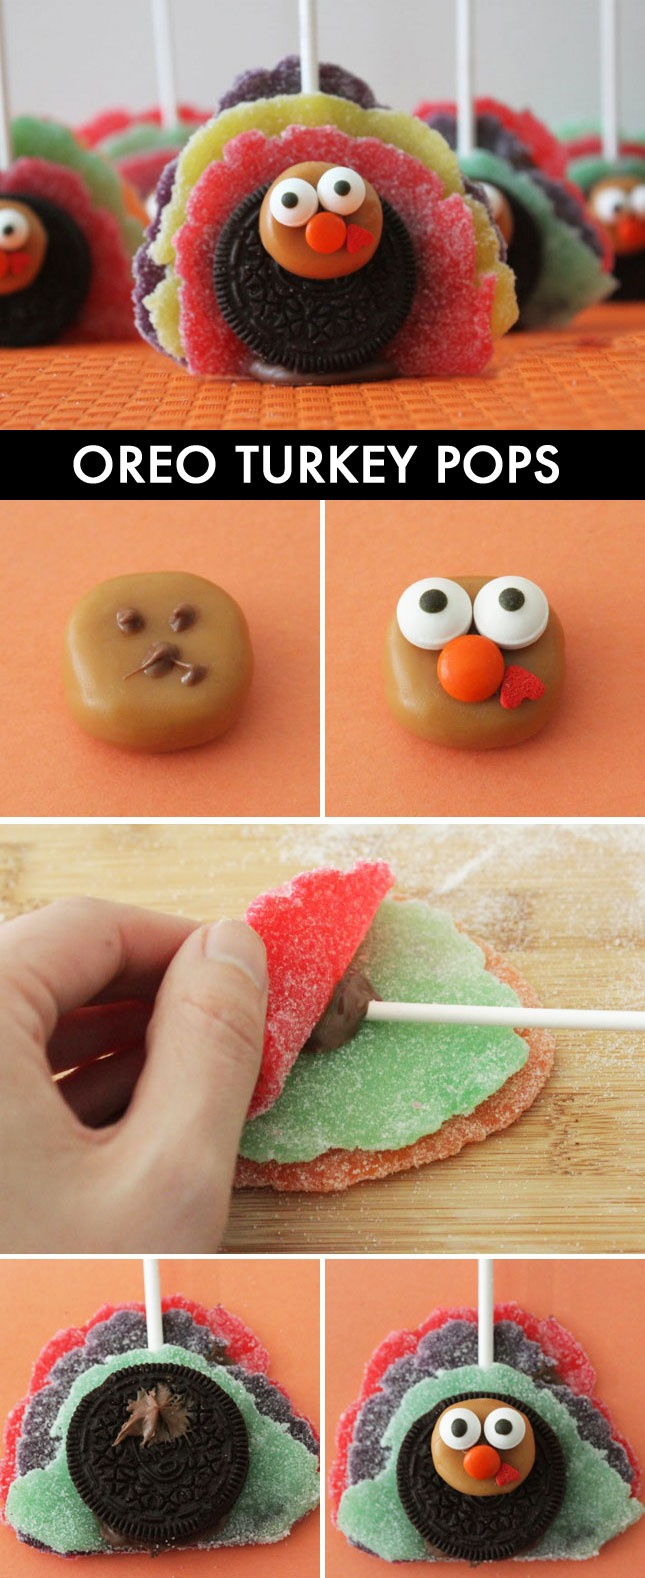 Oreo Turkey Pops - fun!!